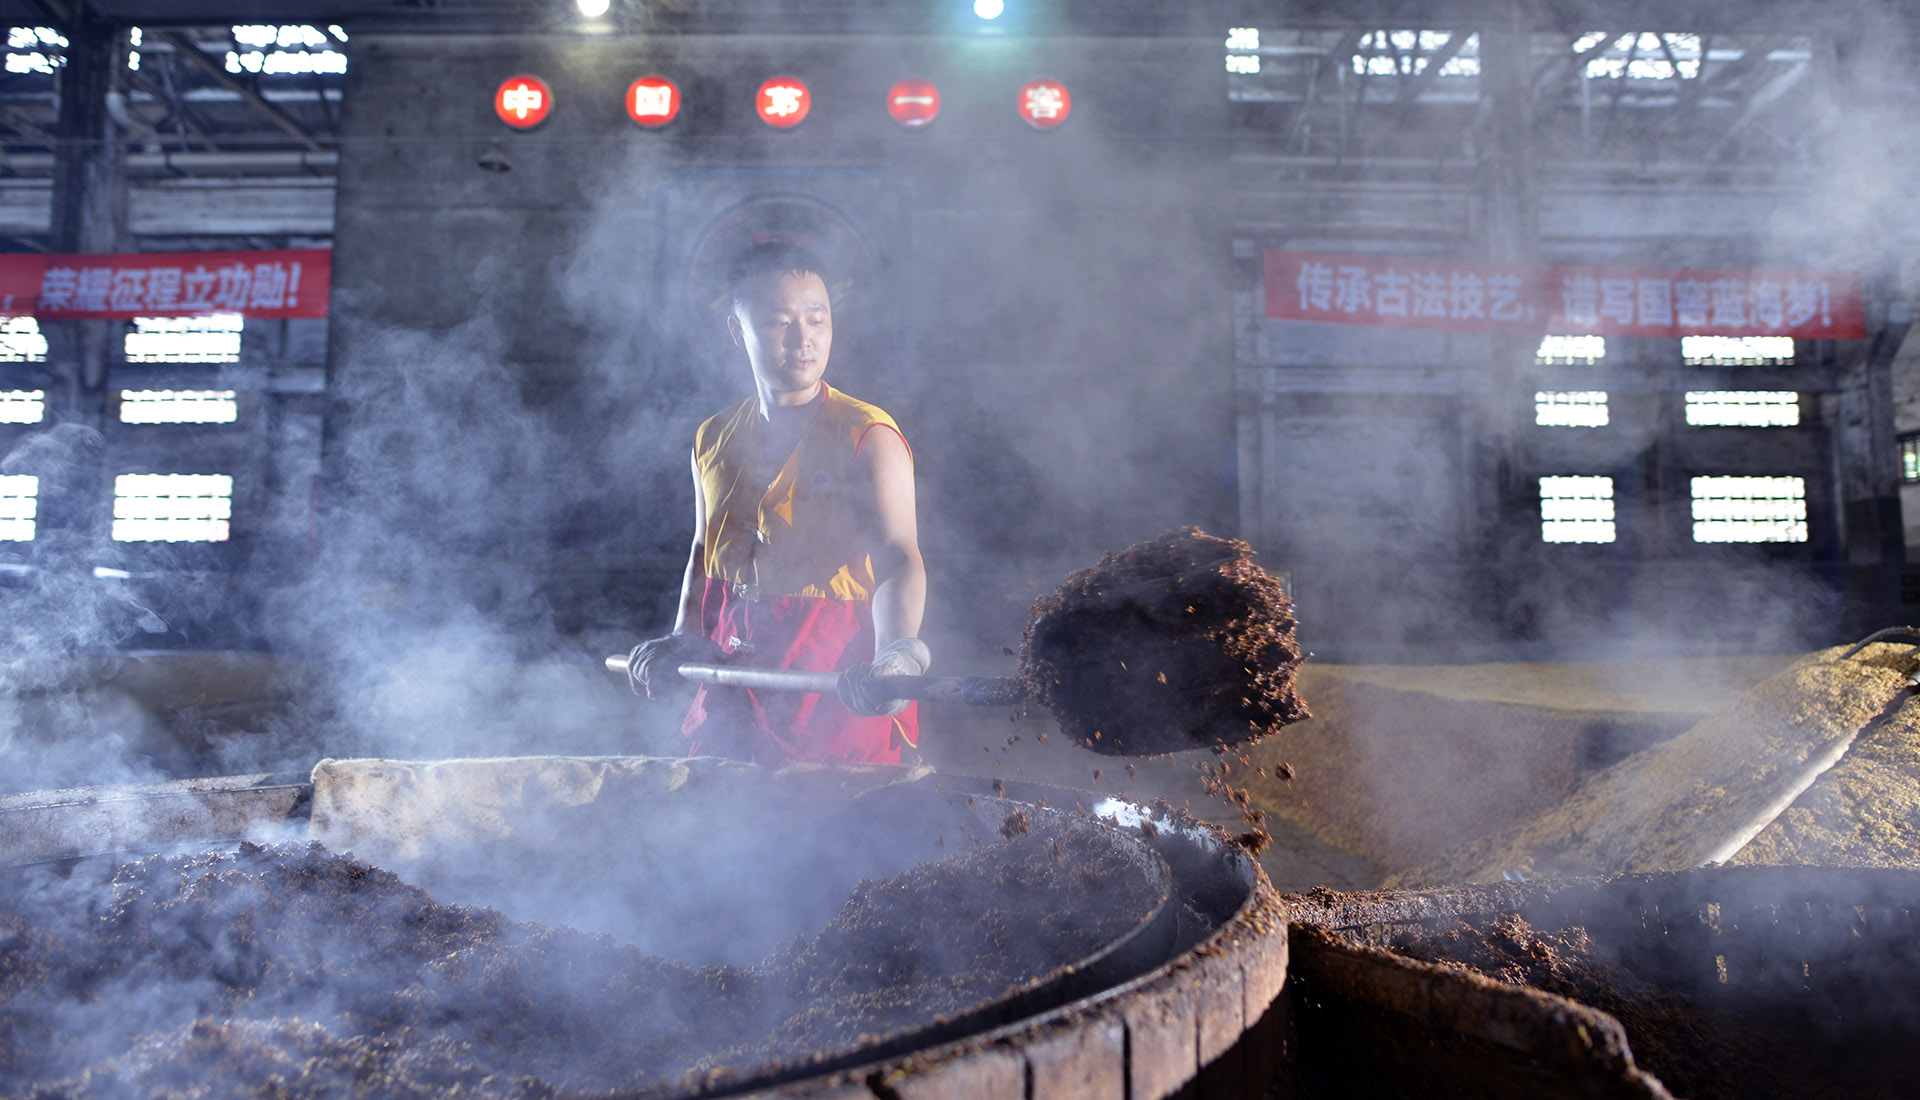 A portion of spent mash being removed from baijiu production to make room for fresh grain / Photo courtesy Luzhou Laojiao